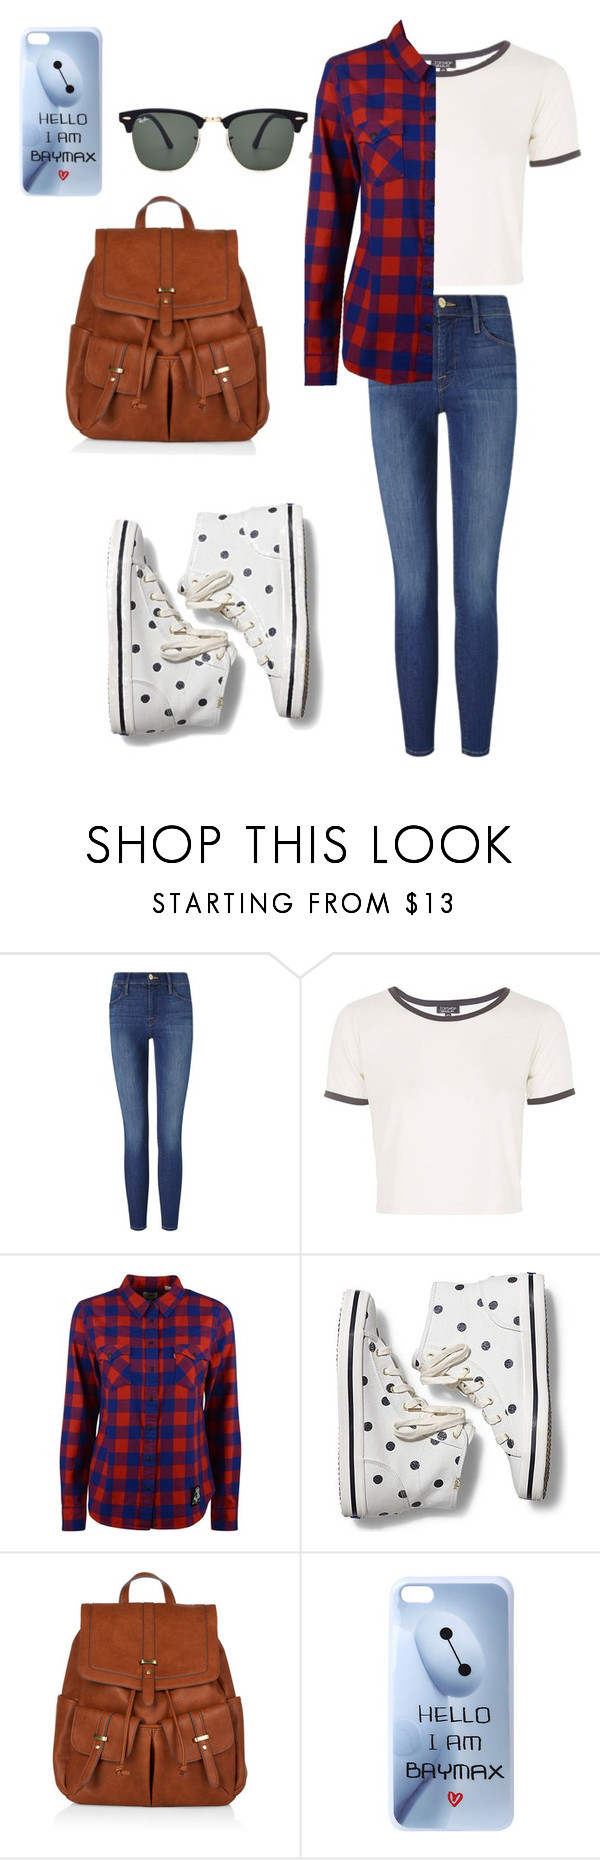 """""""Untitled #41"""" by gaby-lxve ❤ liked on Polyvore featuring Frame, Topshop, Levi's, Keds, Accessorize, Disney and Ray-Ban"""